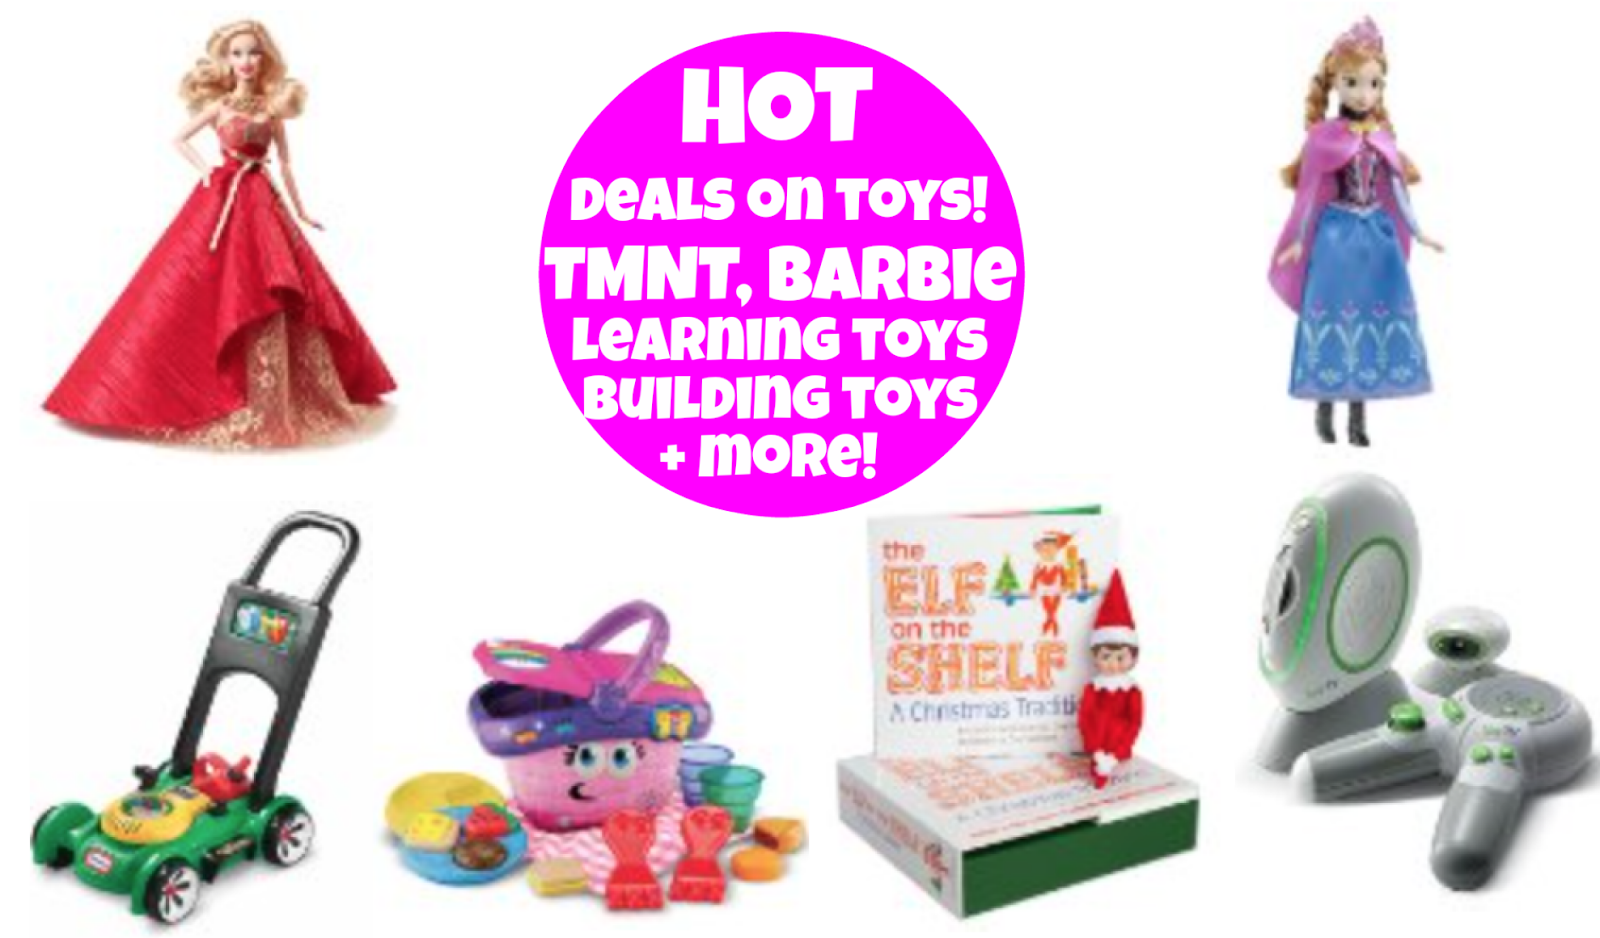 http://www.thebinderladies.com/2014/12/hot-amazon-up-to-50-off-popular-toys.html#.VHzy3YfduyM